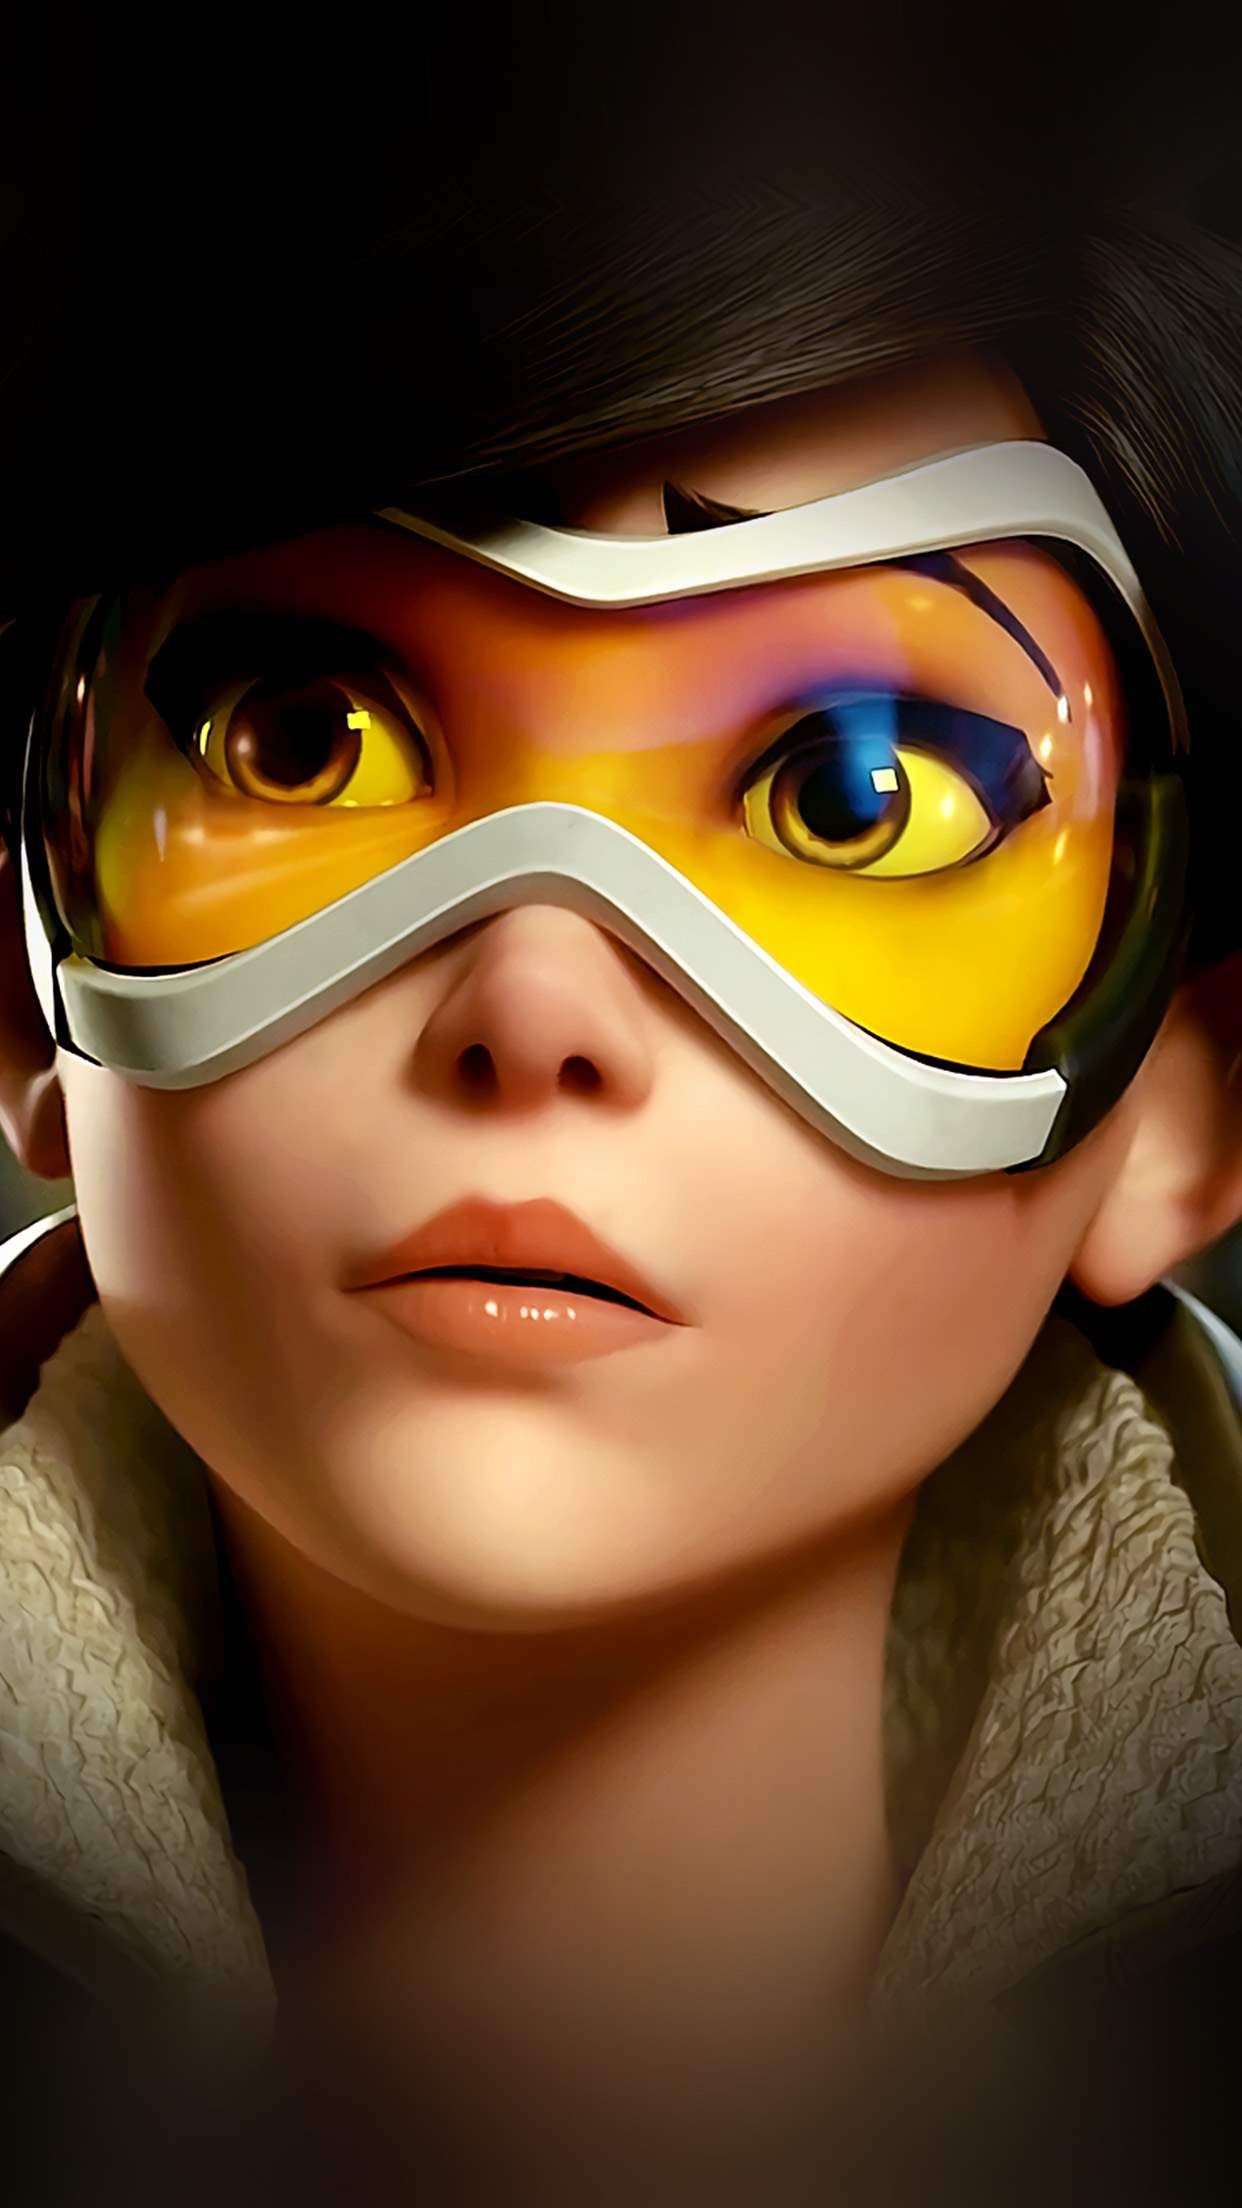 Download Mega Collection Of Cool Iphone Wallpapers Overwatch Tracer Overwatch Overwatch Wallpapers